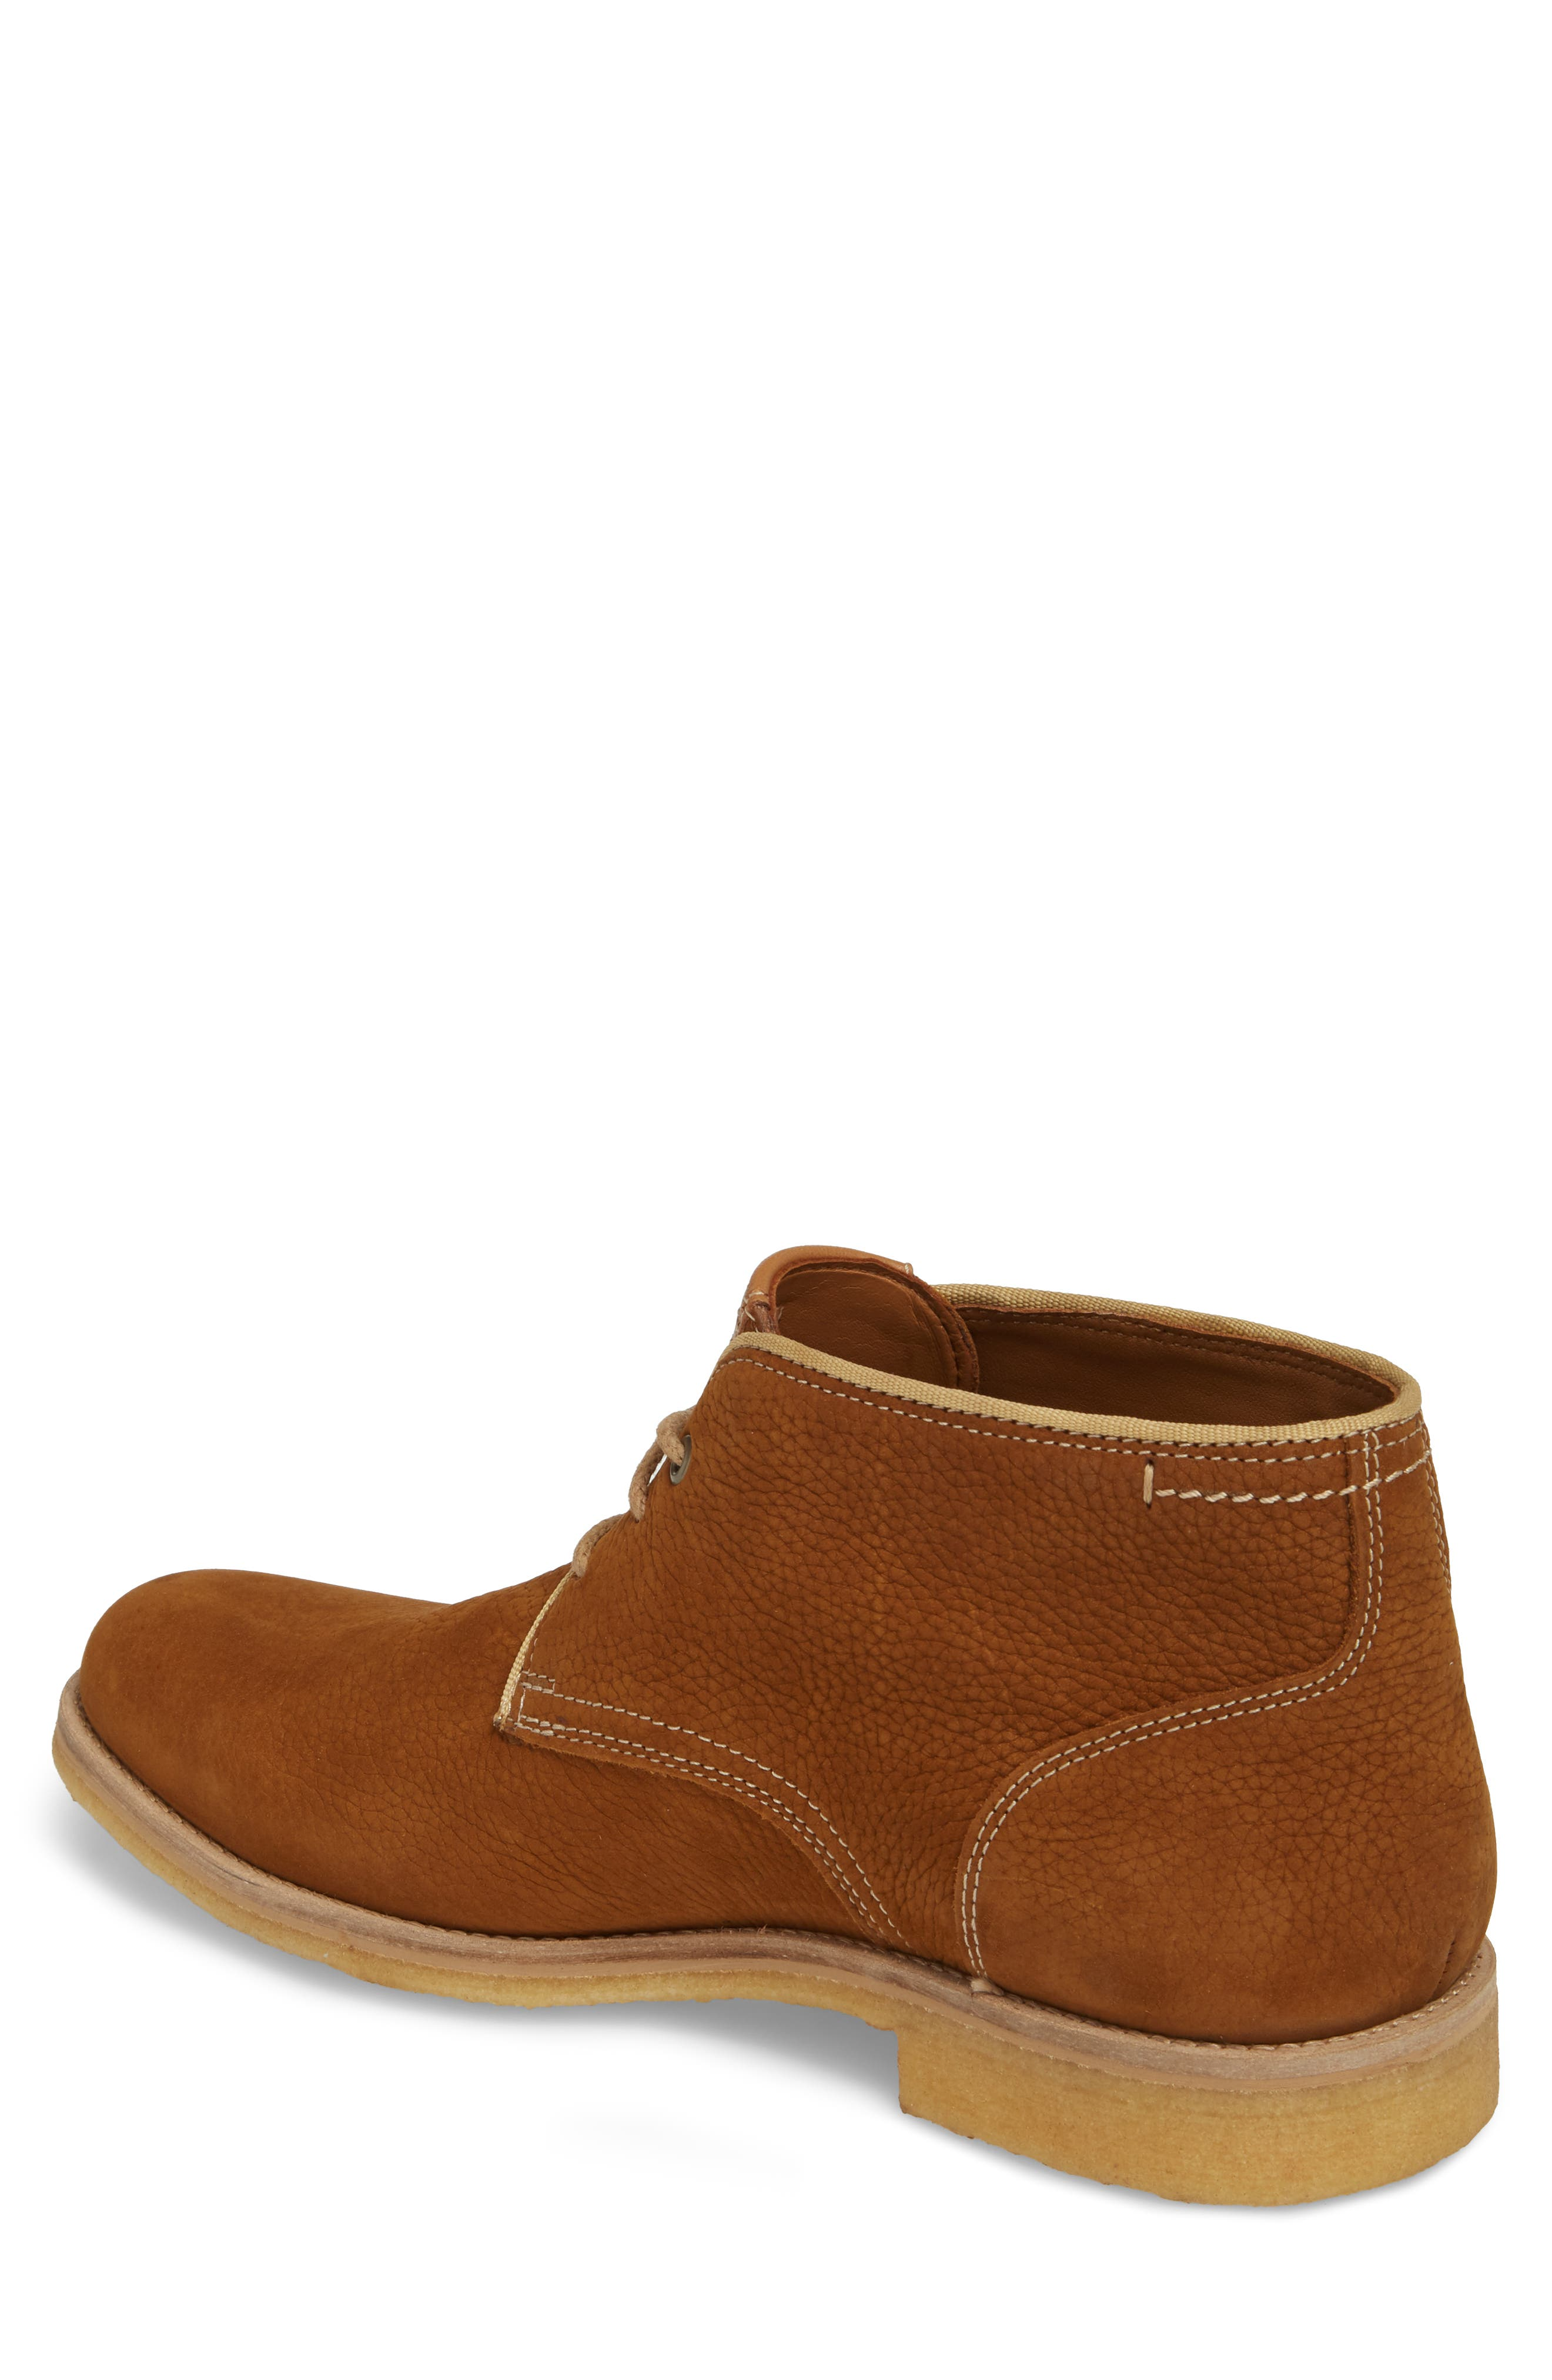 Howell Water Resistant Chukka Boot,                             Alternate thumbnail 2, color,                             Tan Nubuck Leather